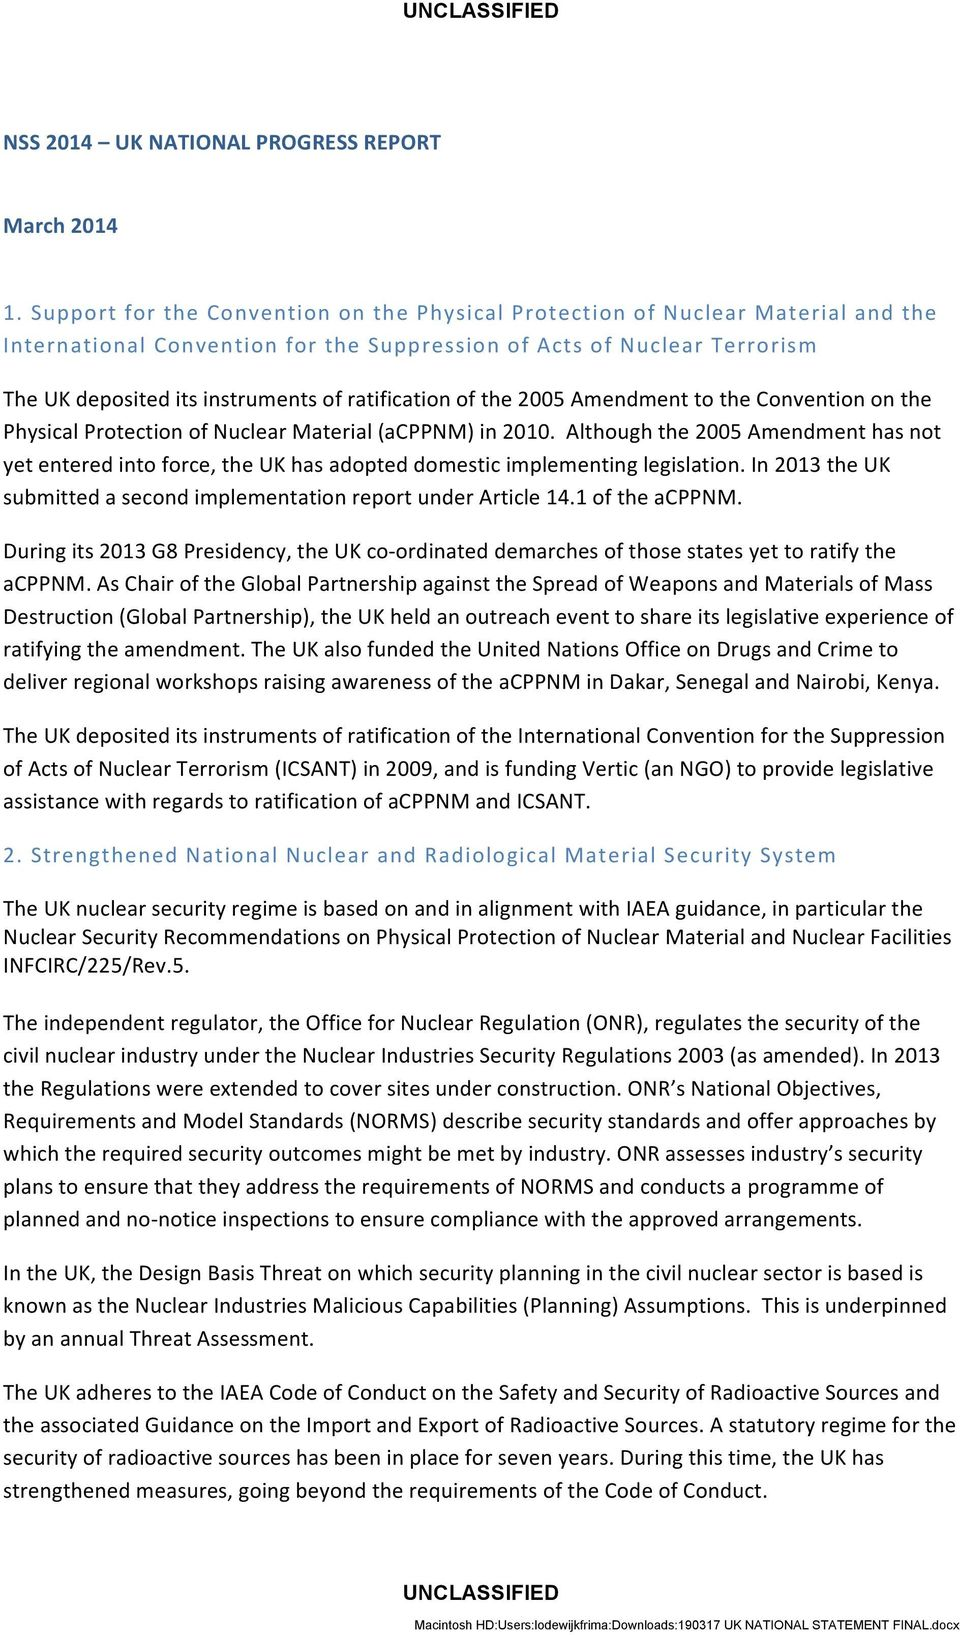 ratification of the 2005 Amendment to the Convention on the Physical Protection of Nuclear Material (acppnm) in 2010.